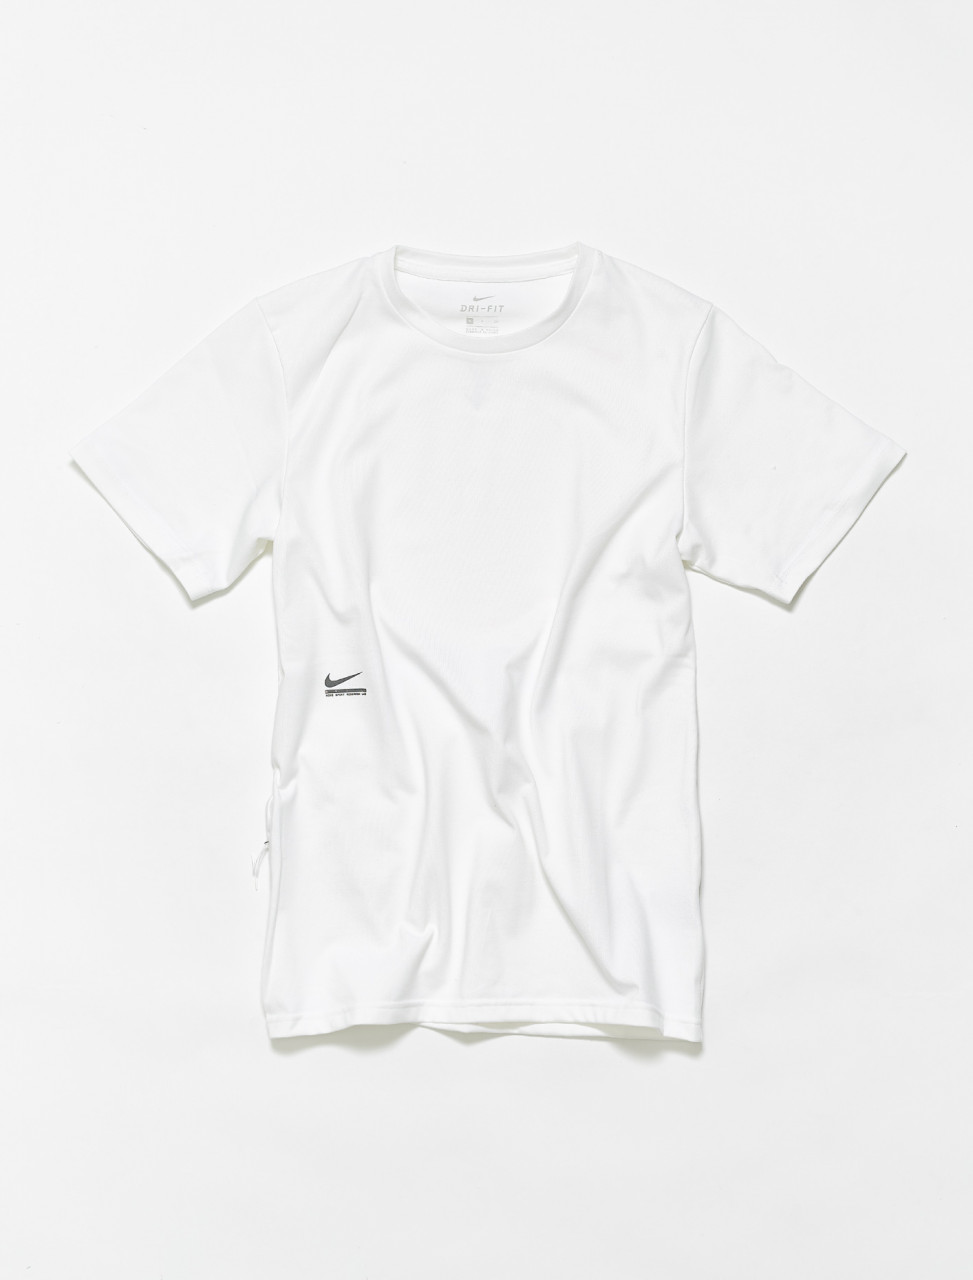 DB0873-100 NIKE SPORTS RESEARCH LAB TEE WHITE